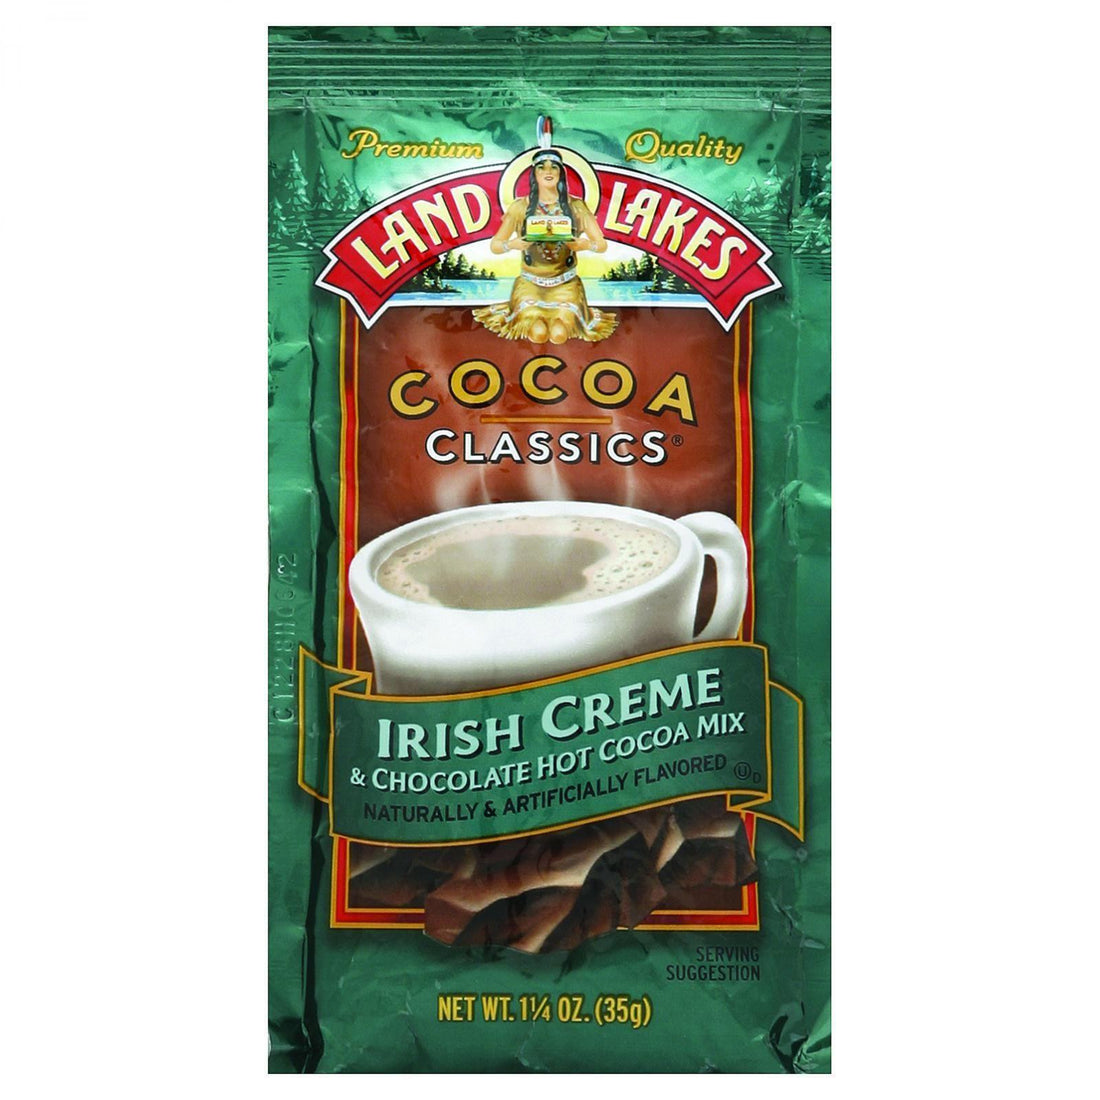 Mother Mantis: Cocoa Cls Choc Irish Crm Land O Lakes